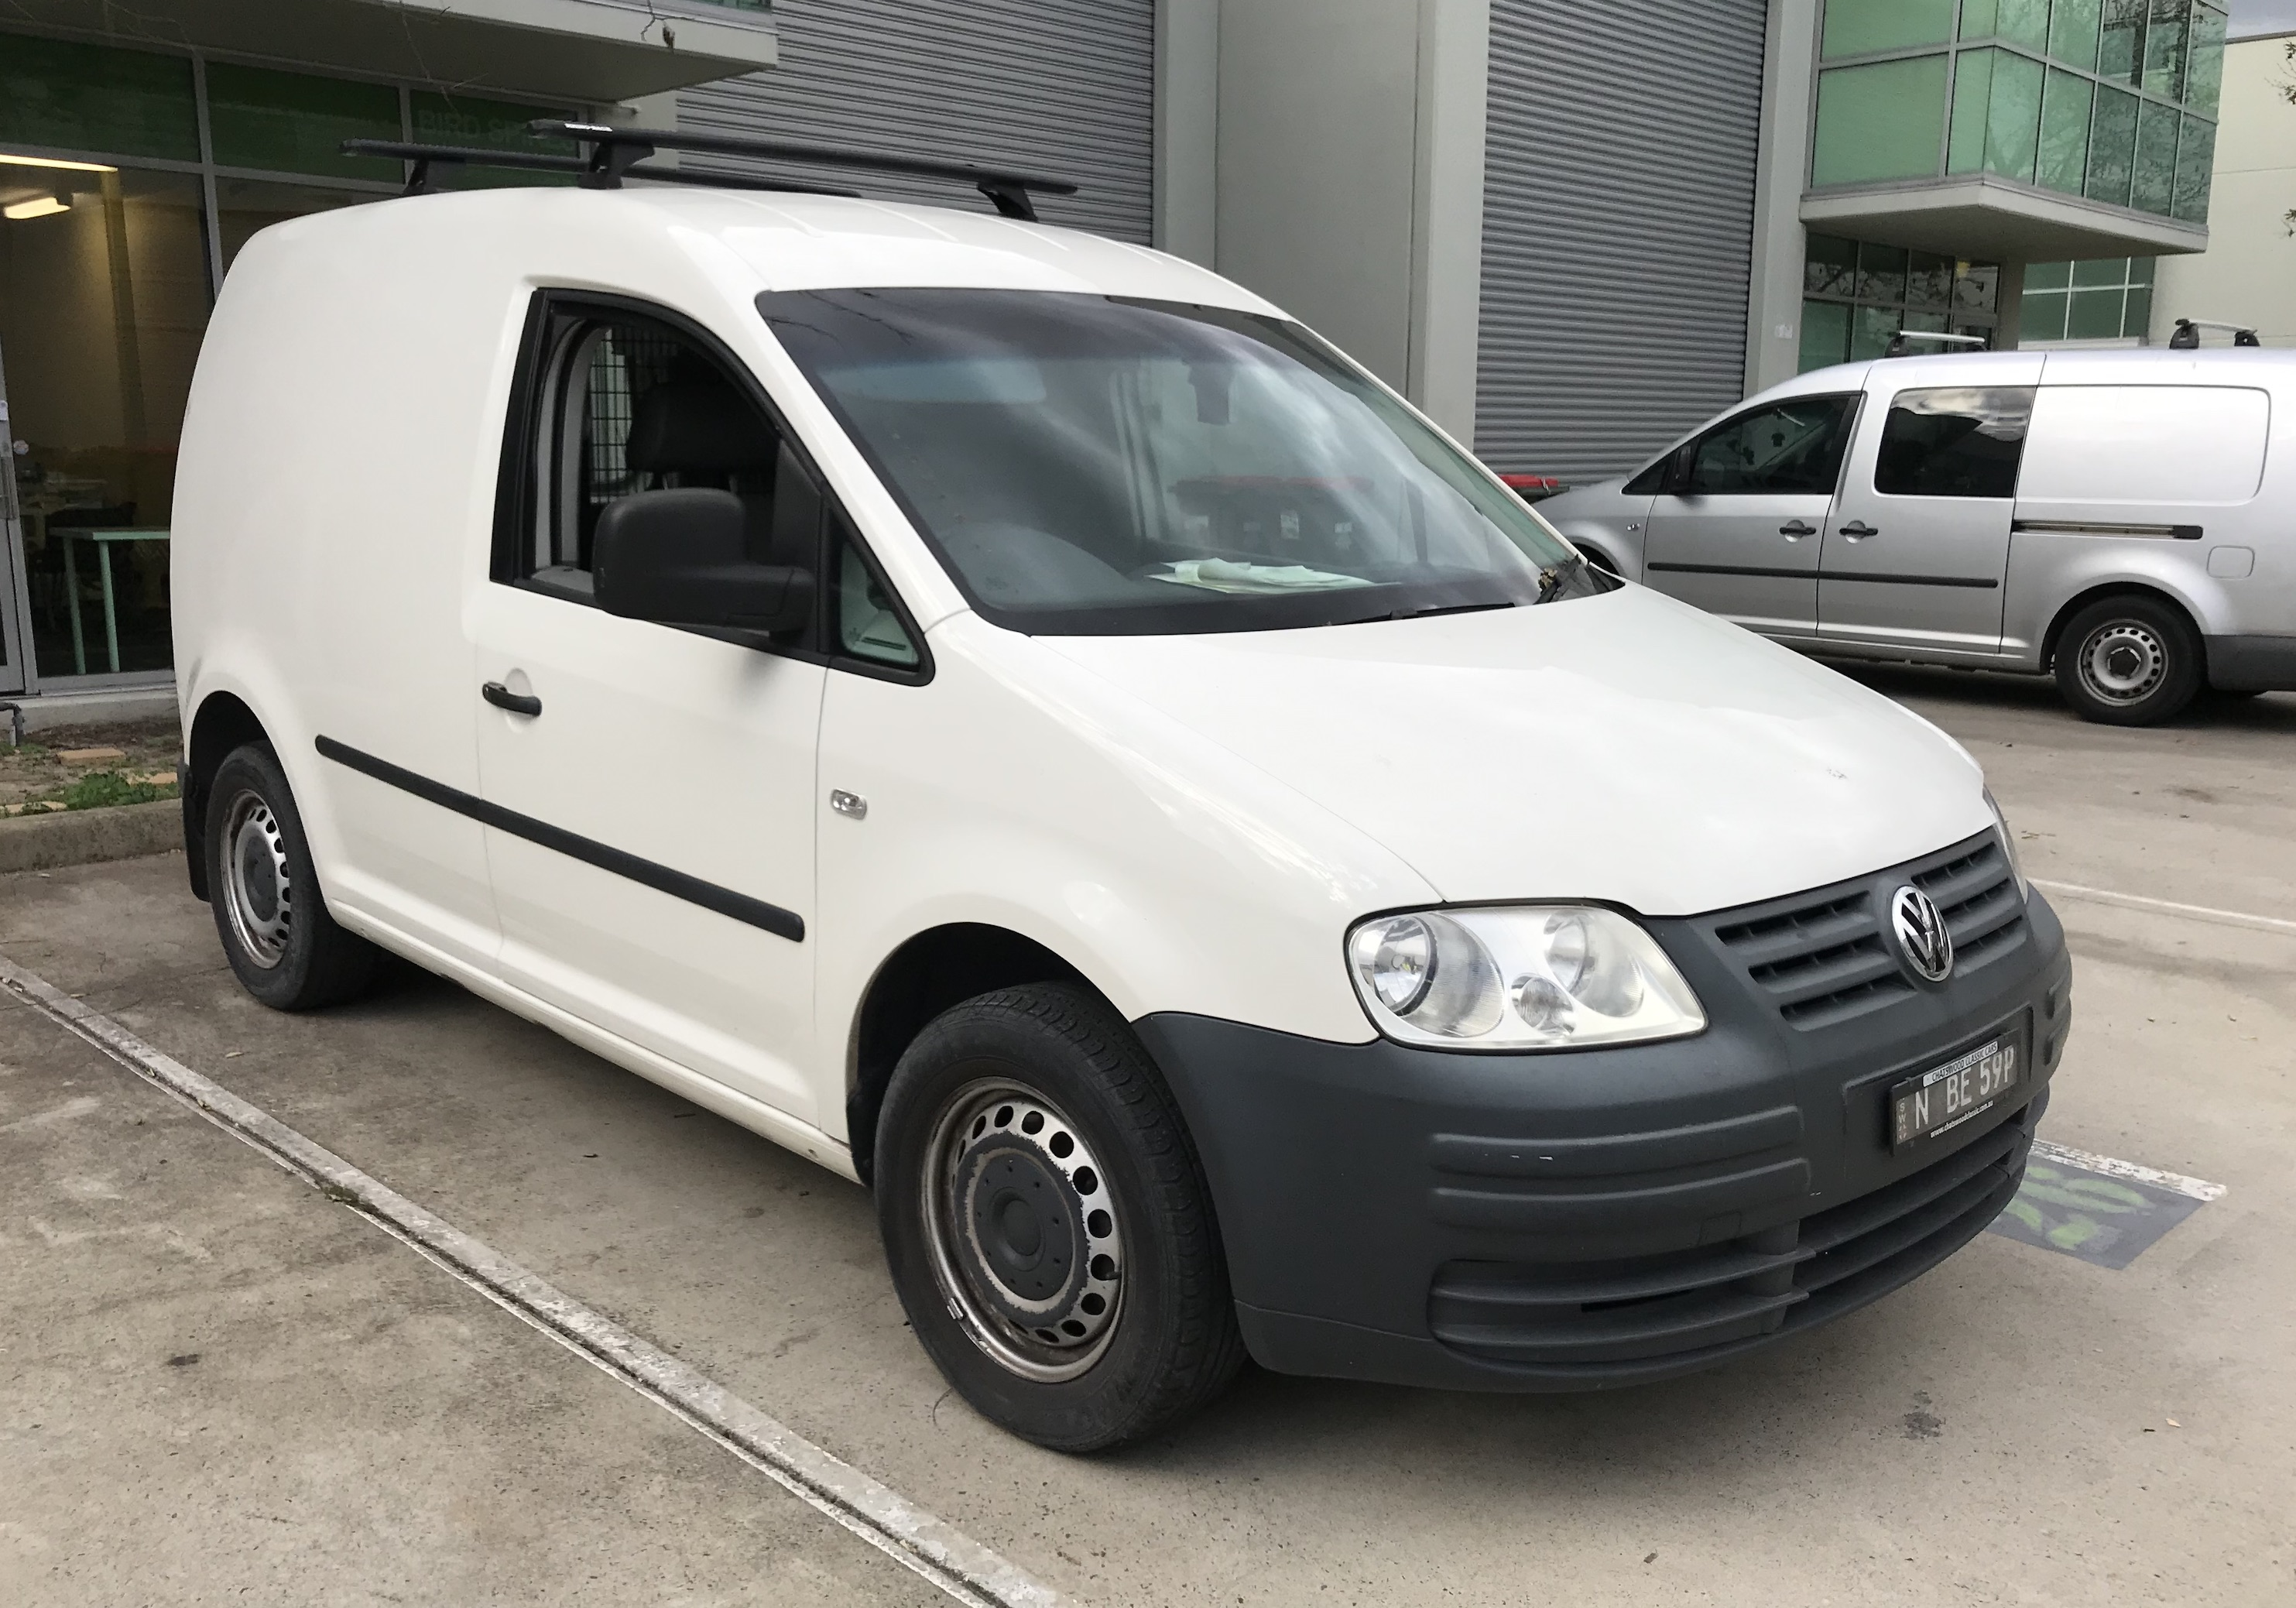 Picture of Song's 2009 Volkswagen Caddy